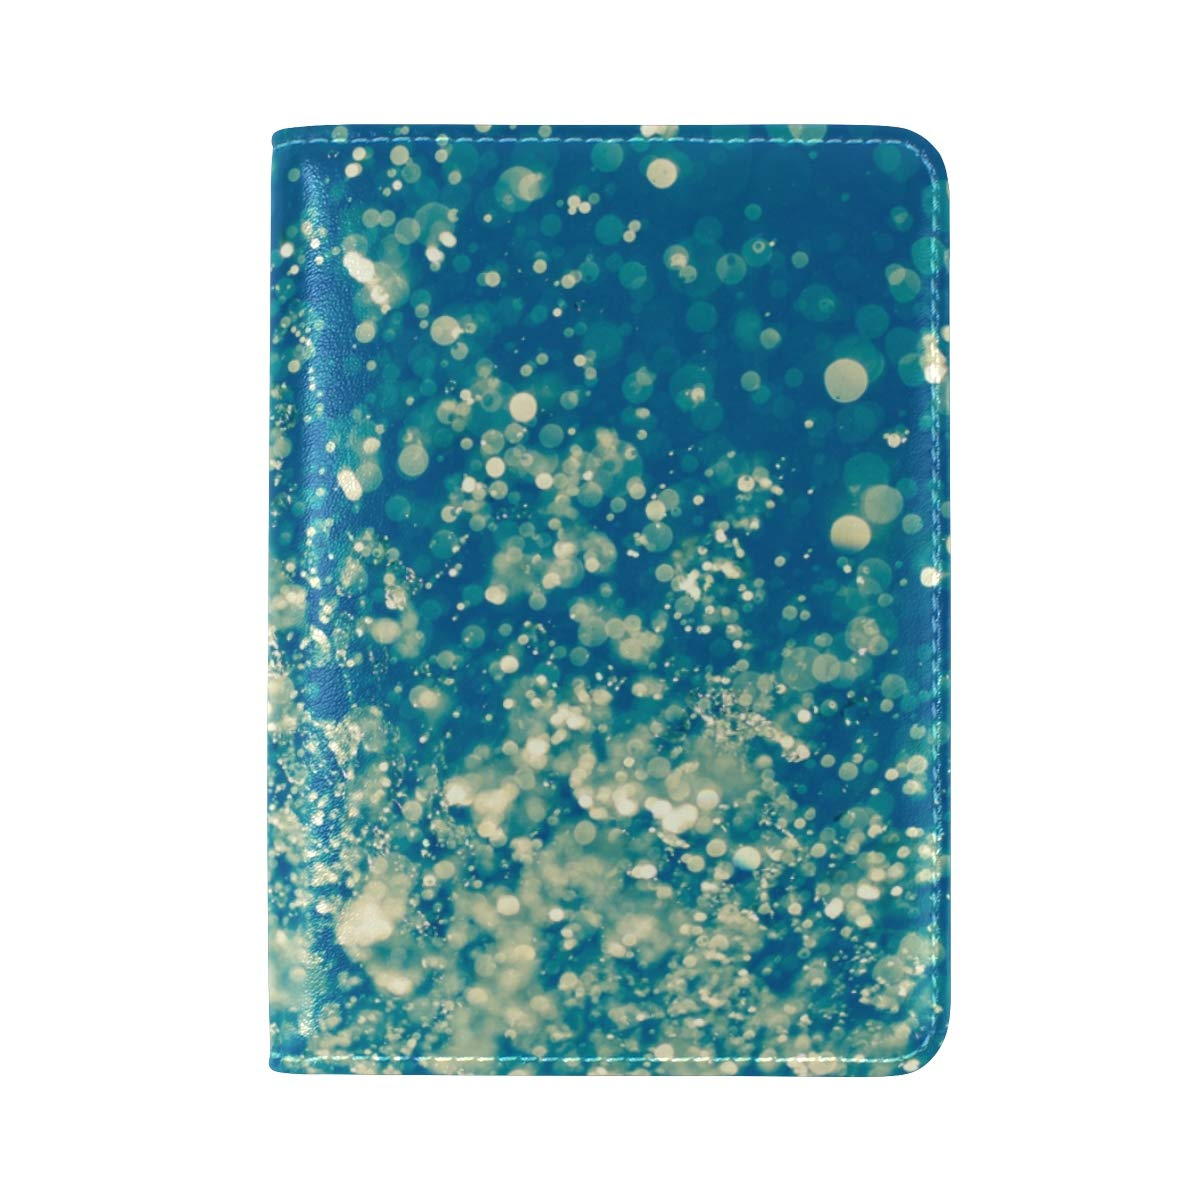 Water Drop Blue One Pocket Leather Passport Holder Cover Case Protector for Men Women Travel